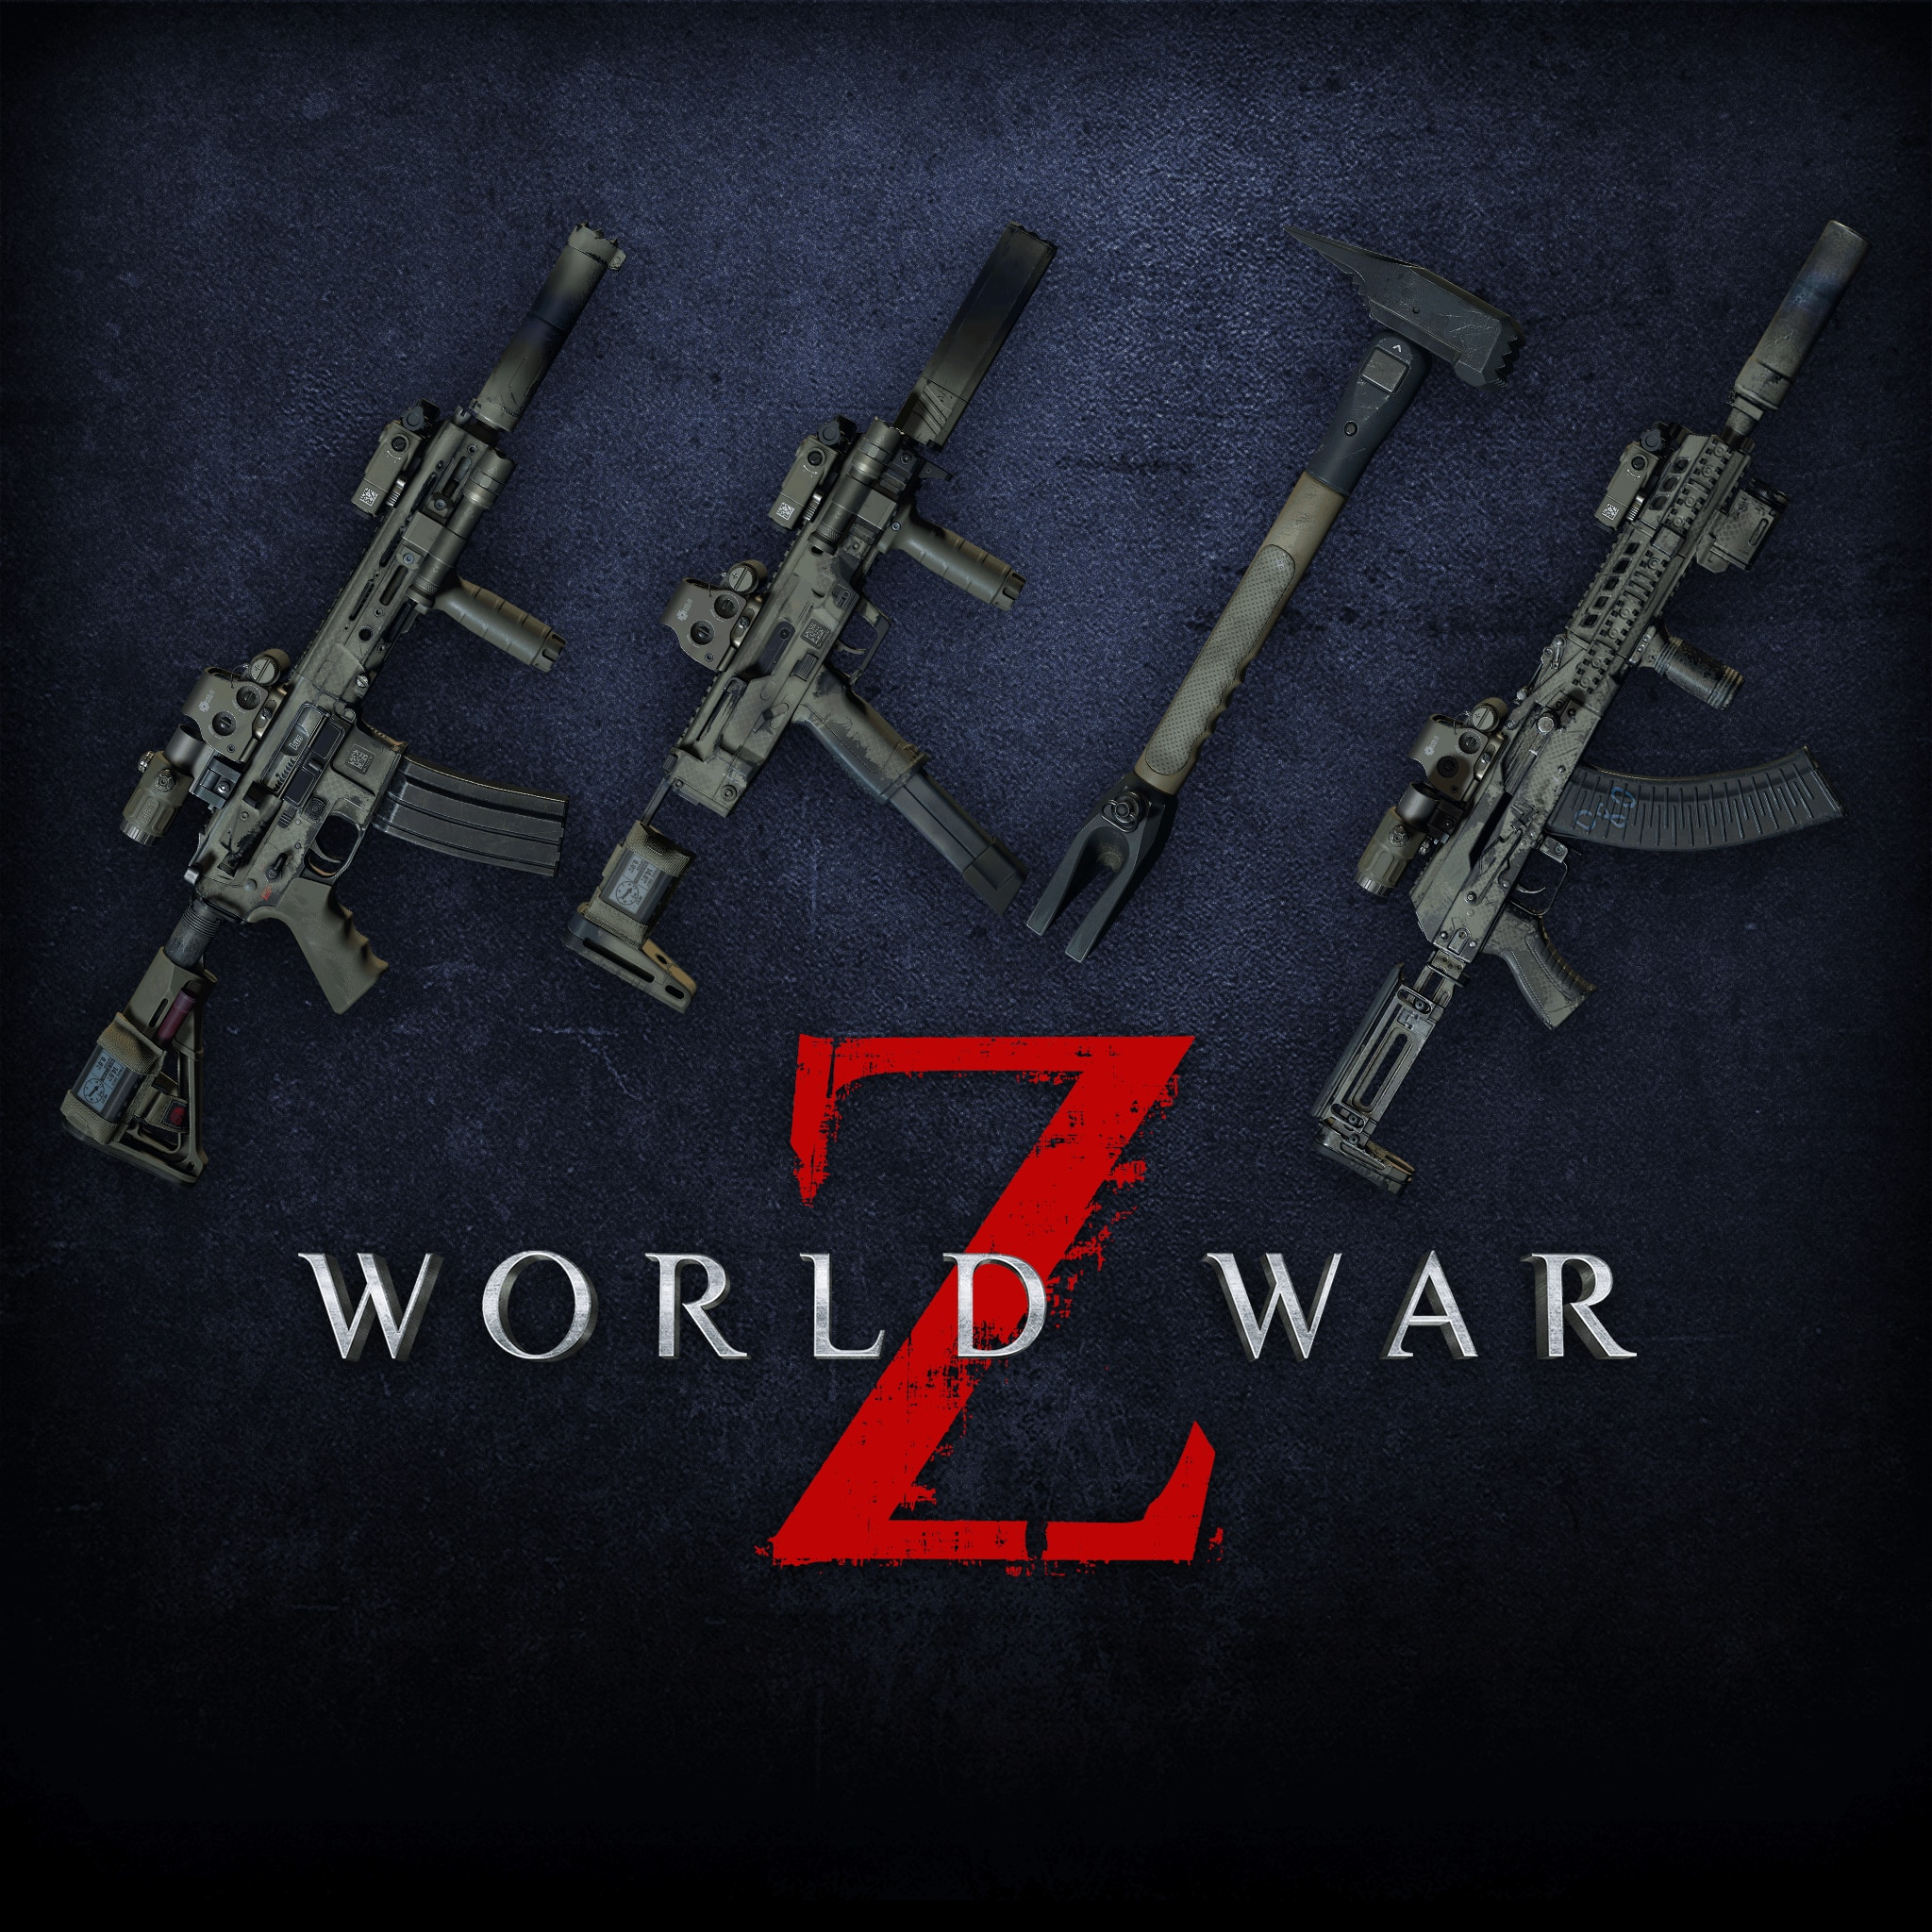 World War Z - Special Operations Forces Pack